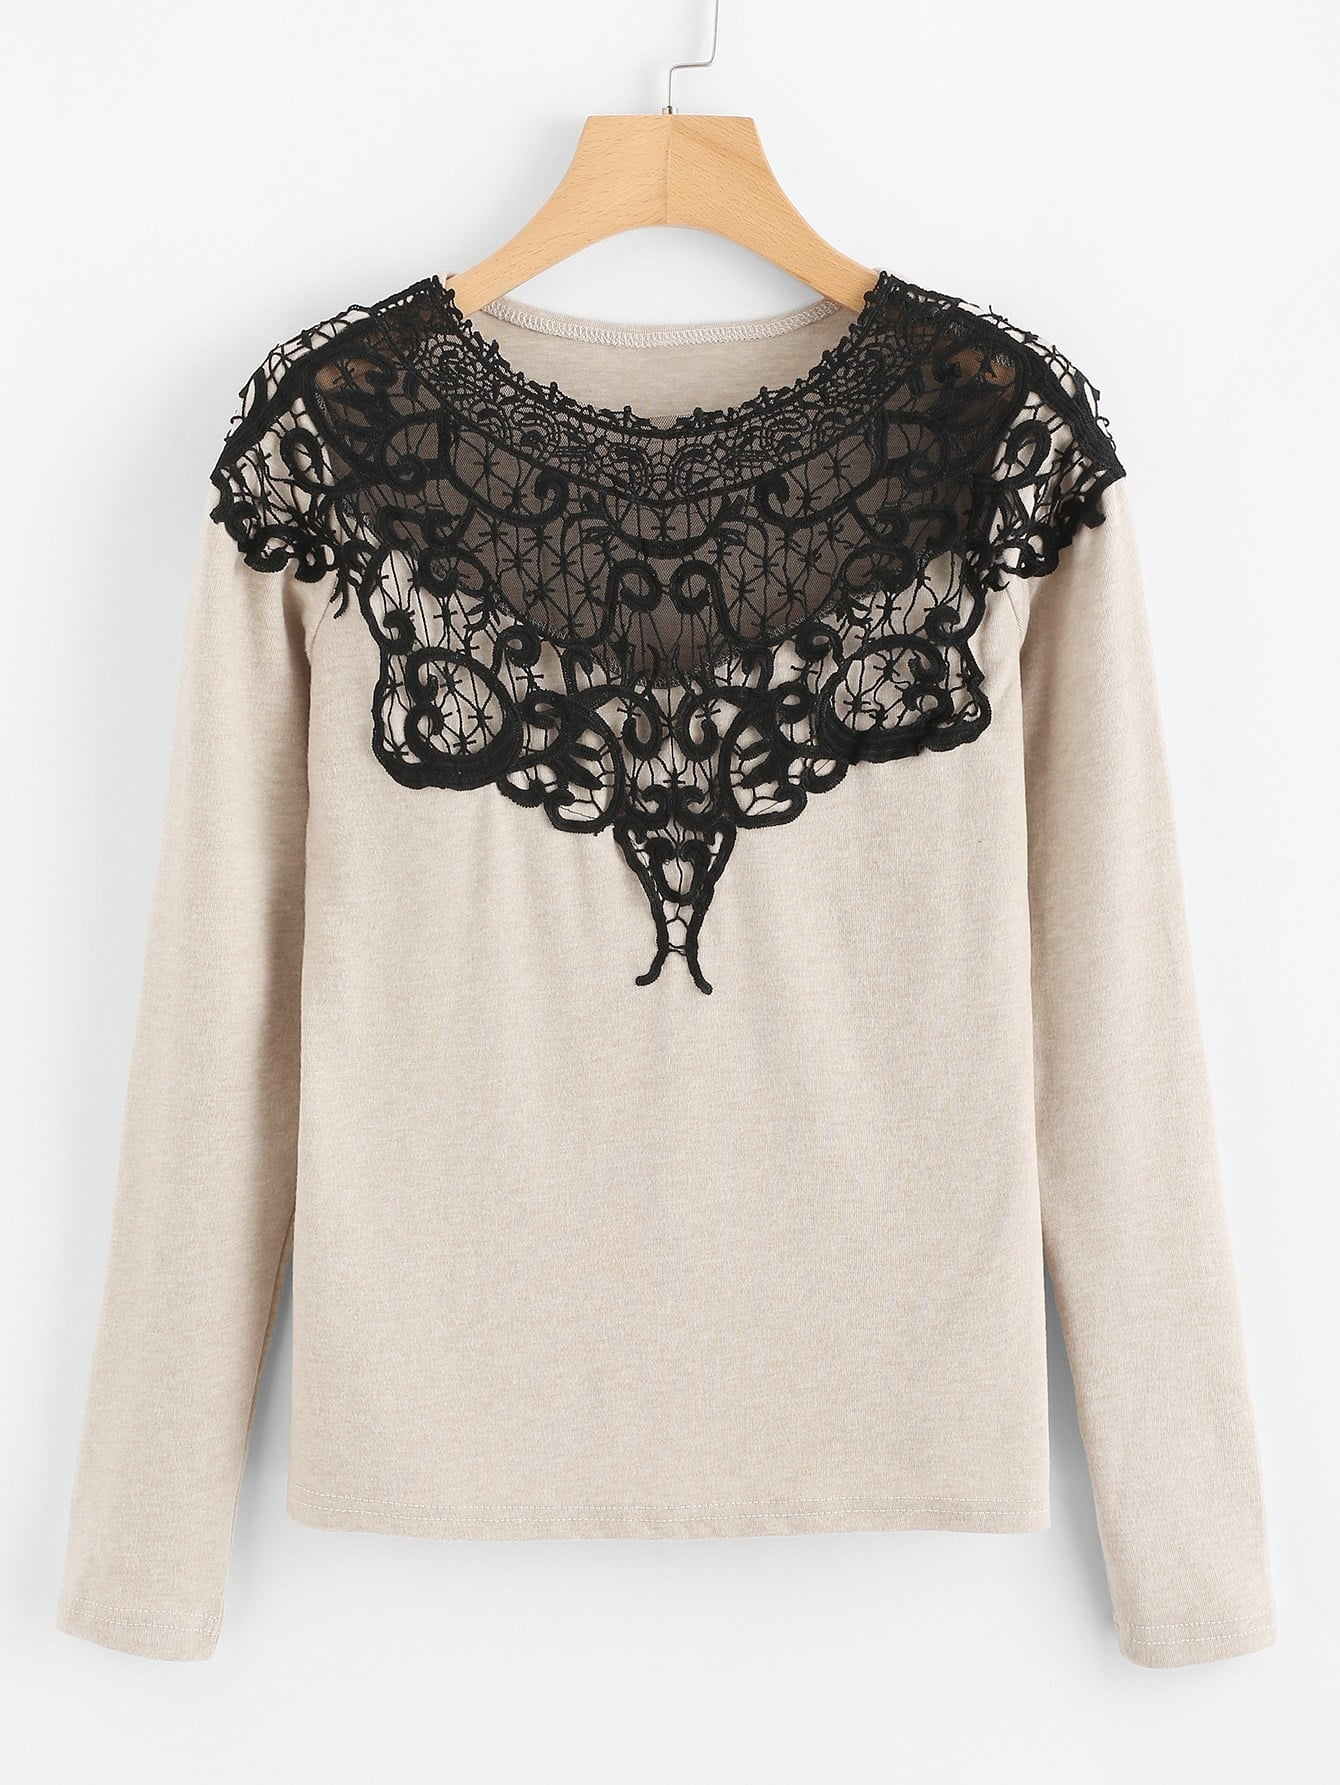 Contrast Lace Applique T-shirt lace applique two tone t shirt